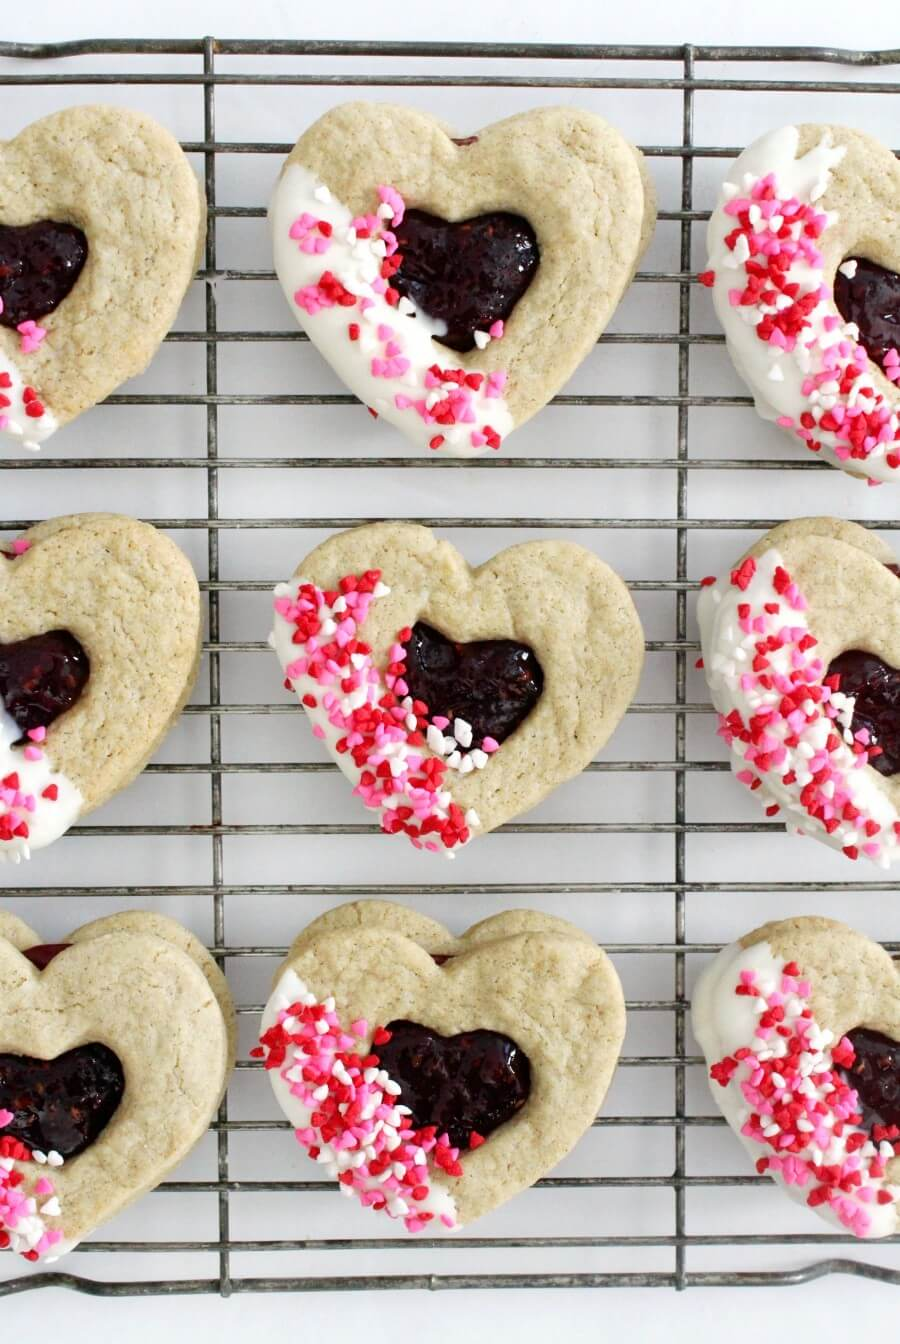 gluten-free valentine's day heart cookies cooling on a wire rack